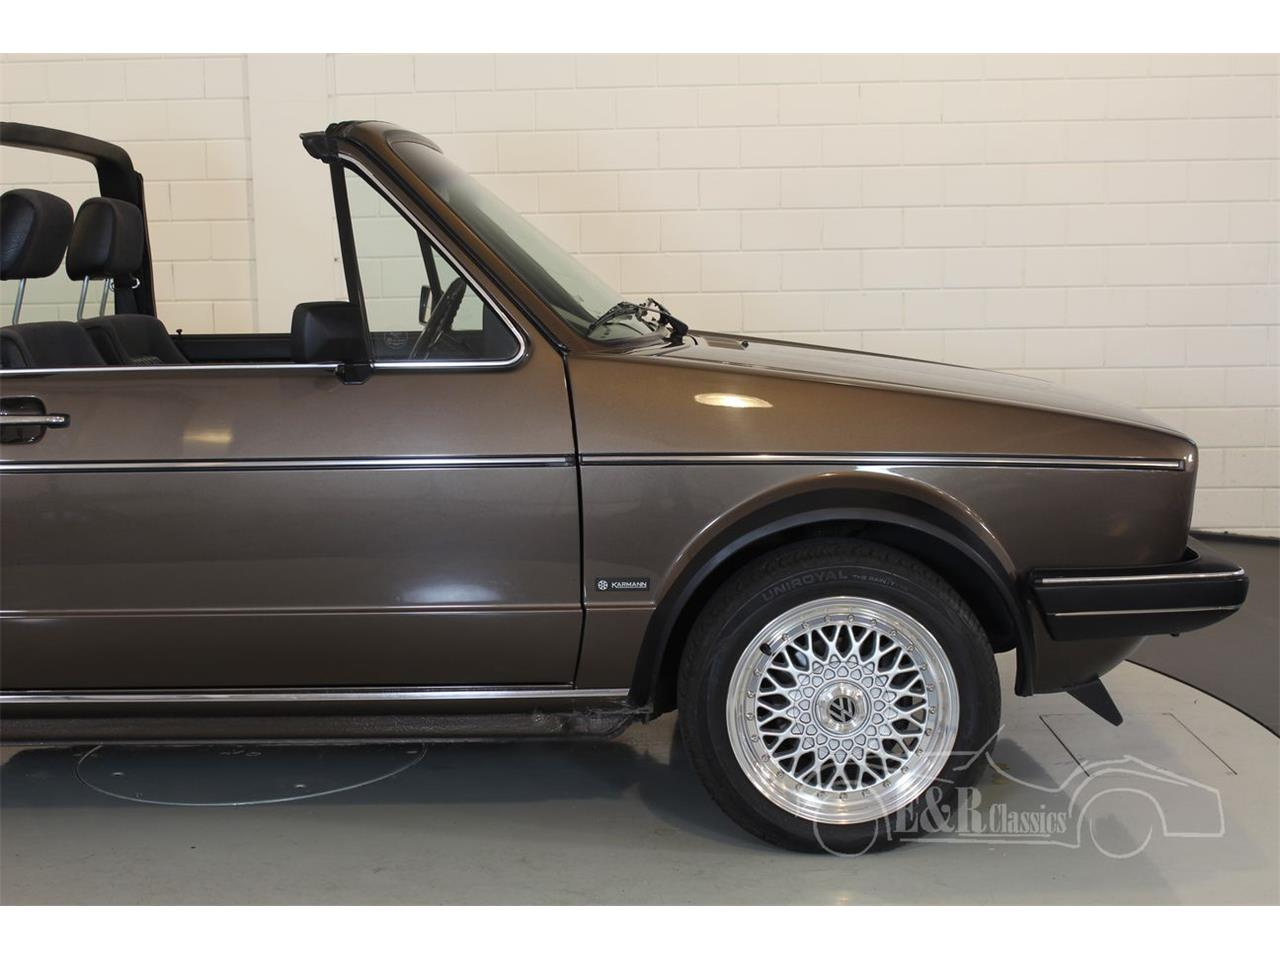 Large Picture of 1984 Golf located in - Keine Angabe - - $19,100.00 Offered by E & R Classics - PH4B